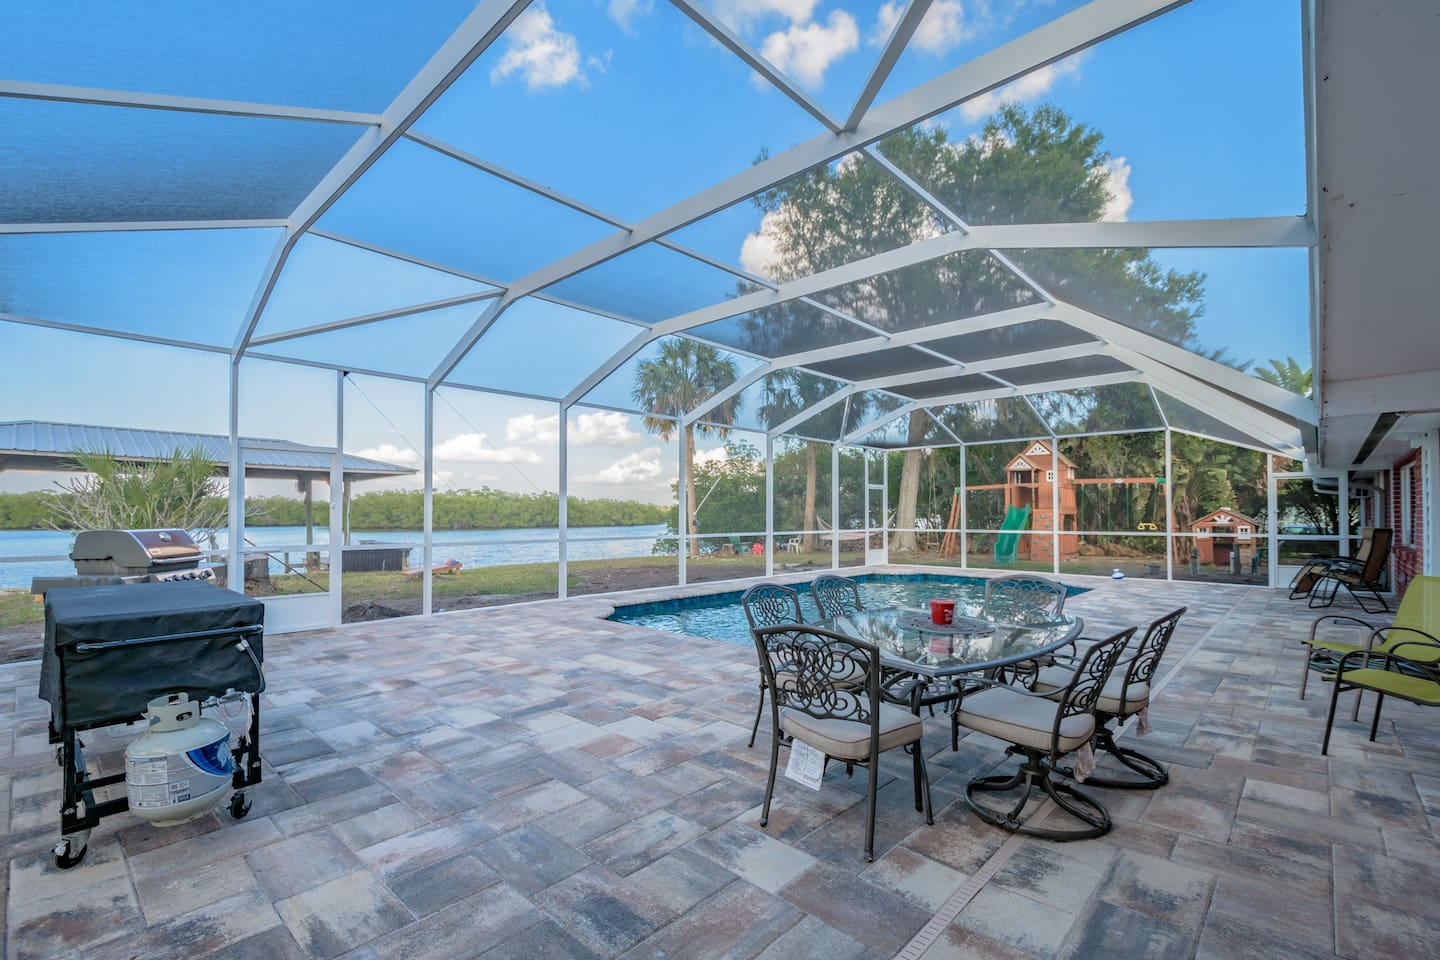 Waterfront Pool Home with Boat Dock- REAL FLORIDA! - Houses for Rent ...